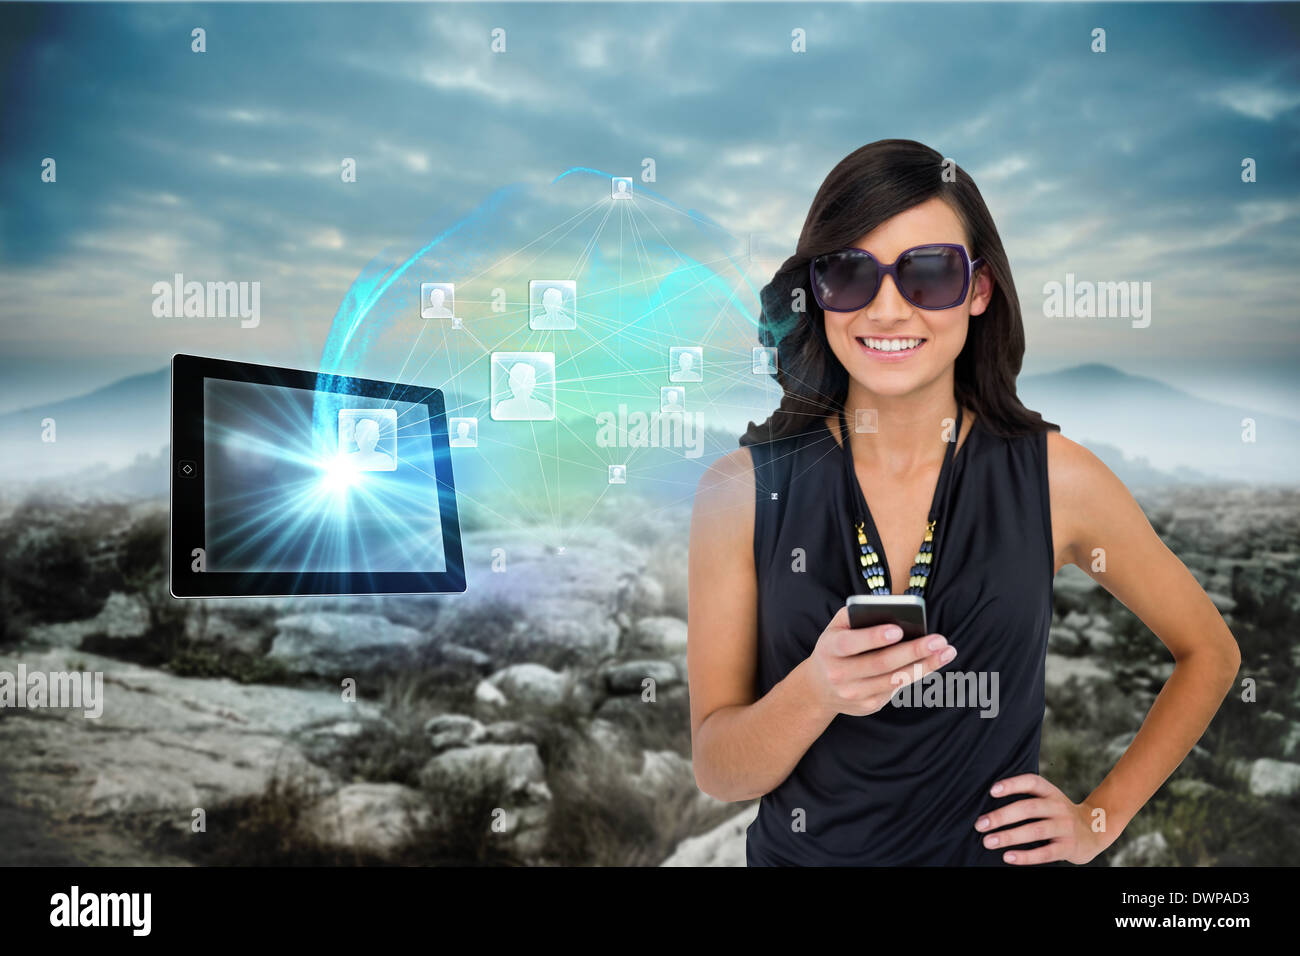 Glamorous brunette using smartphone with profile pictures - Stock Image